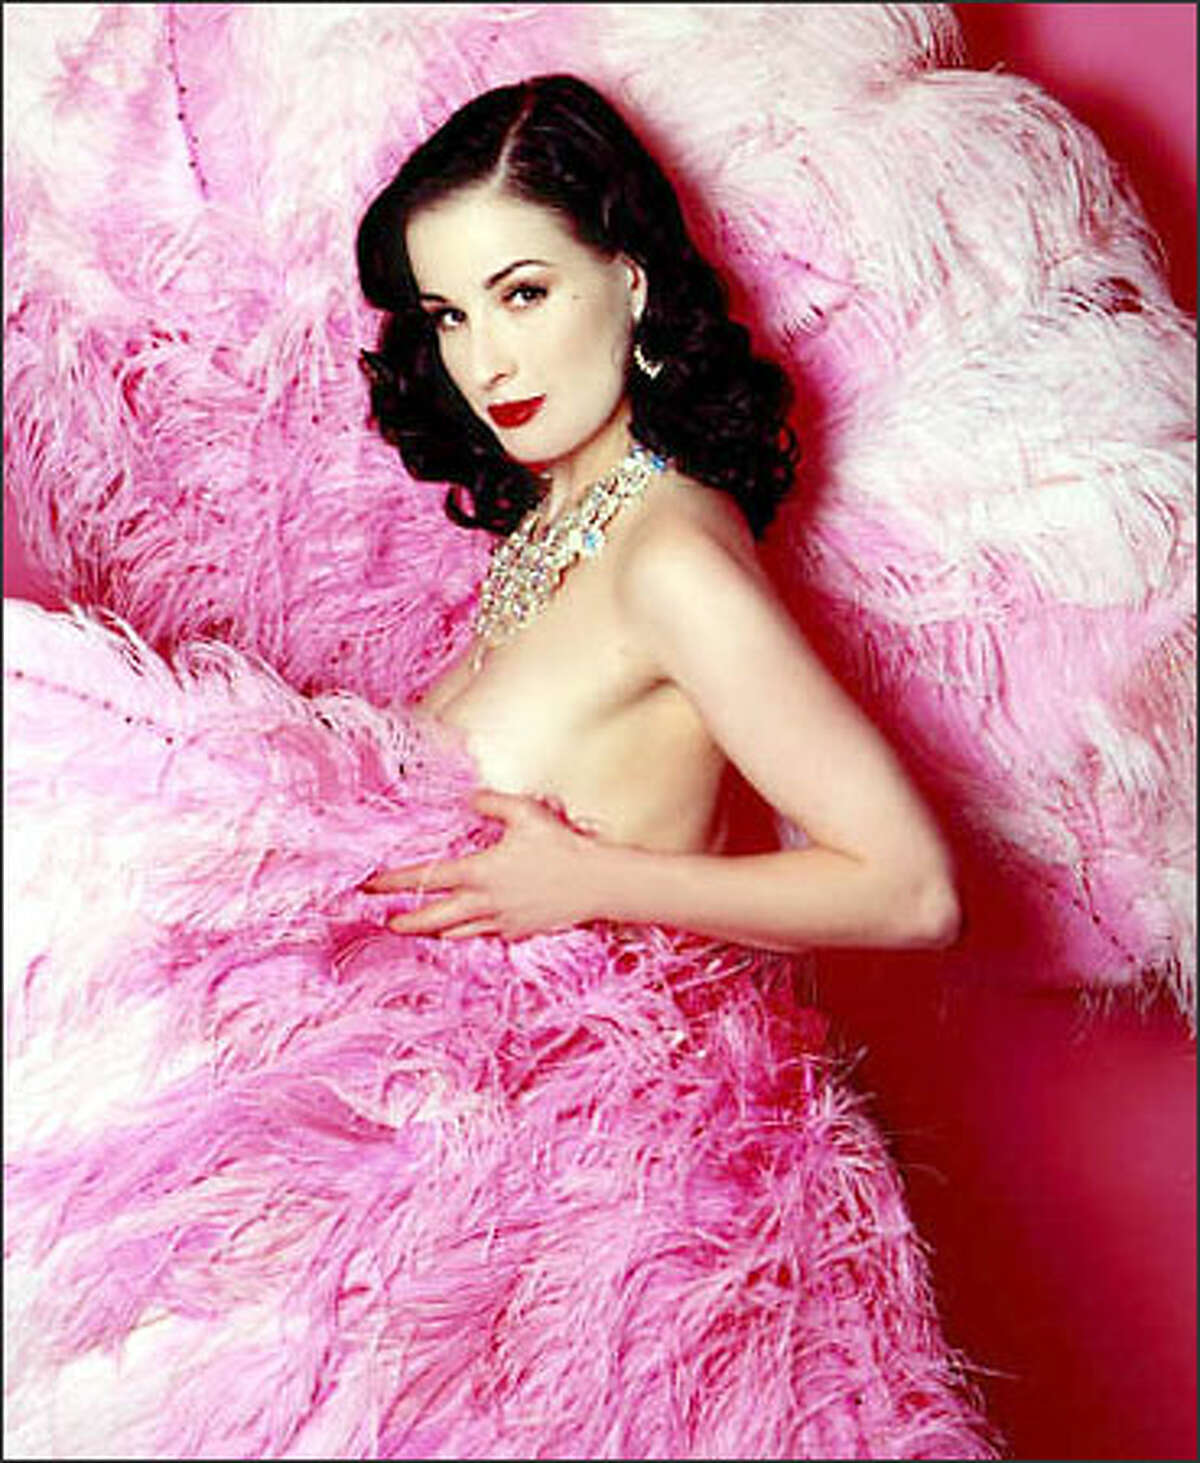 Today's burlesque dancers perform at corporate parties and events, where their show is likely to be tamer than prime-time television. Dita Von Teese, one of the top stars in burlesque, already has more business than she can handle.